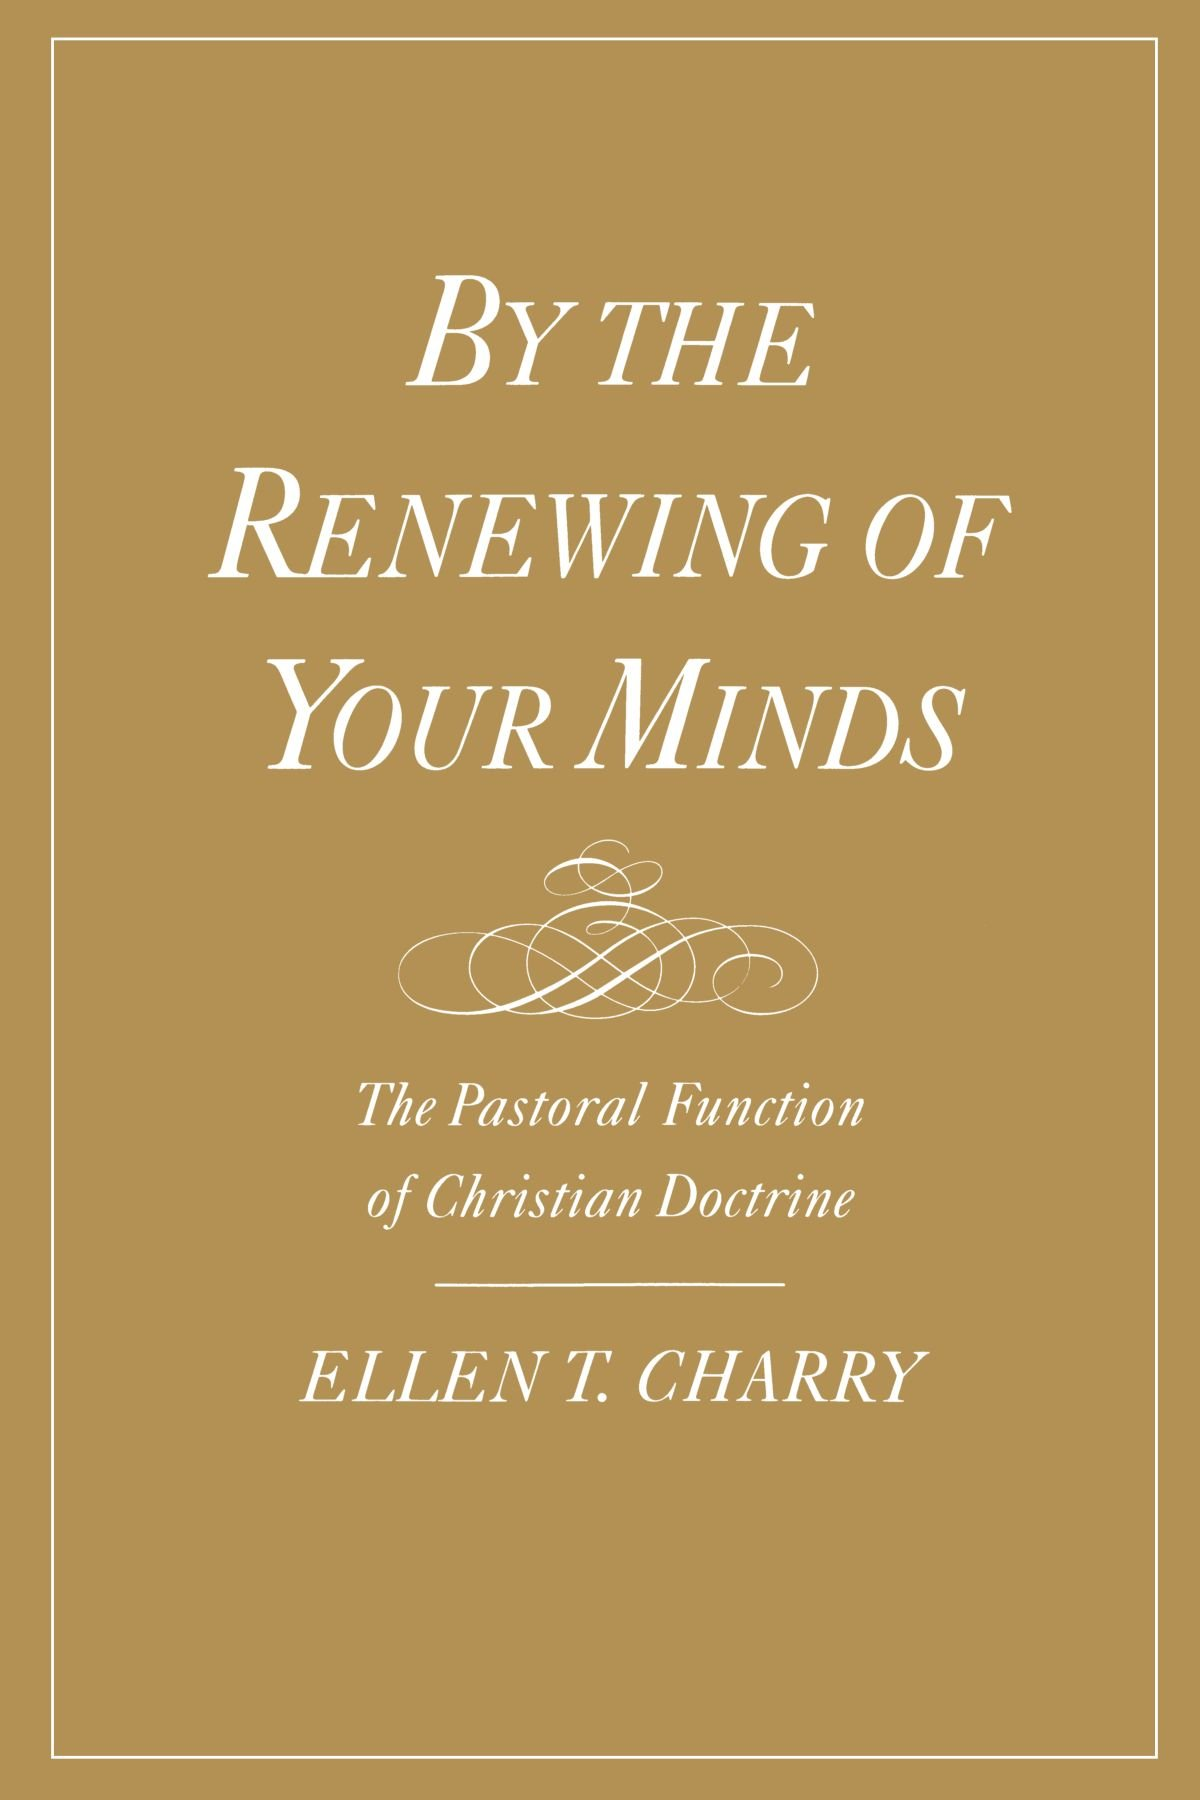 By the Renewing of Your Minds: The Pastoral Function of Christian Doctrine by Oxford University Press